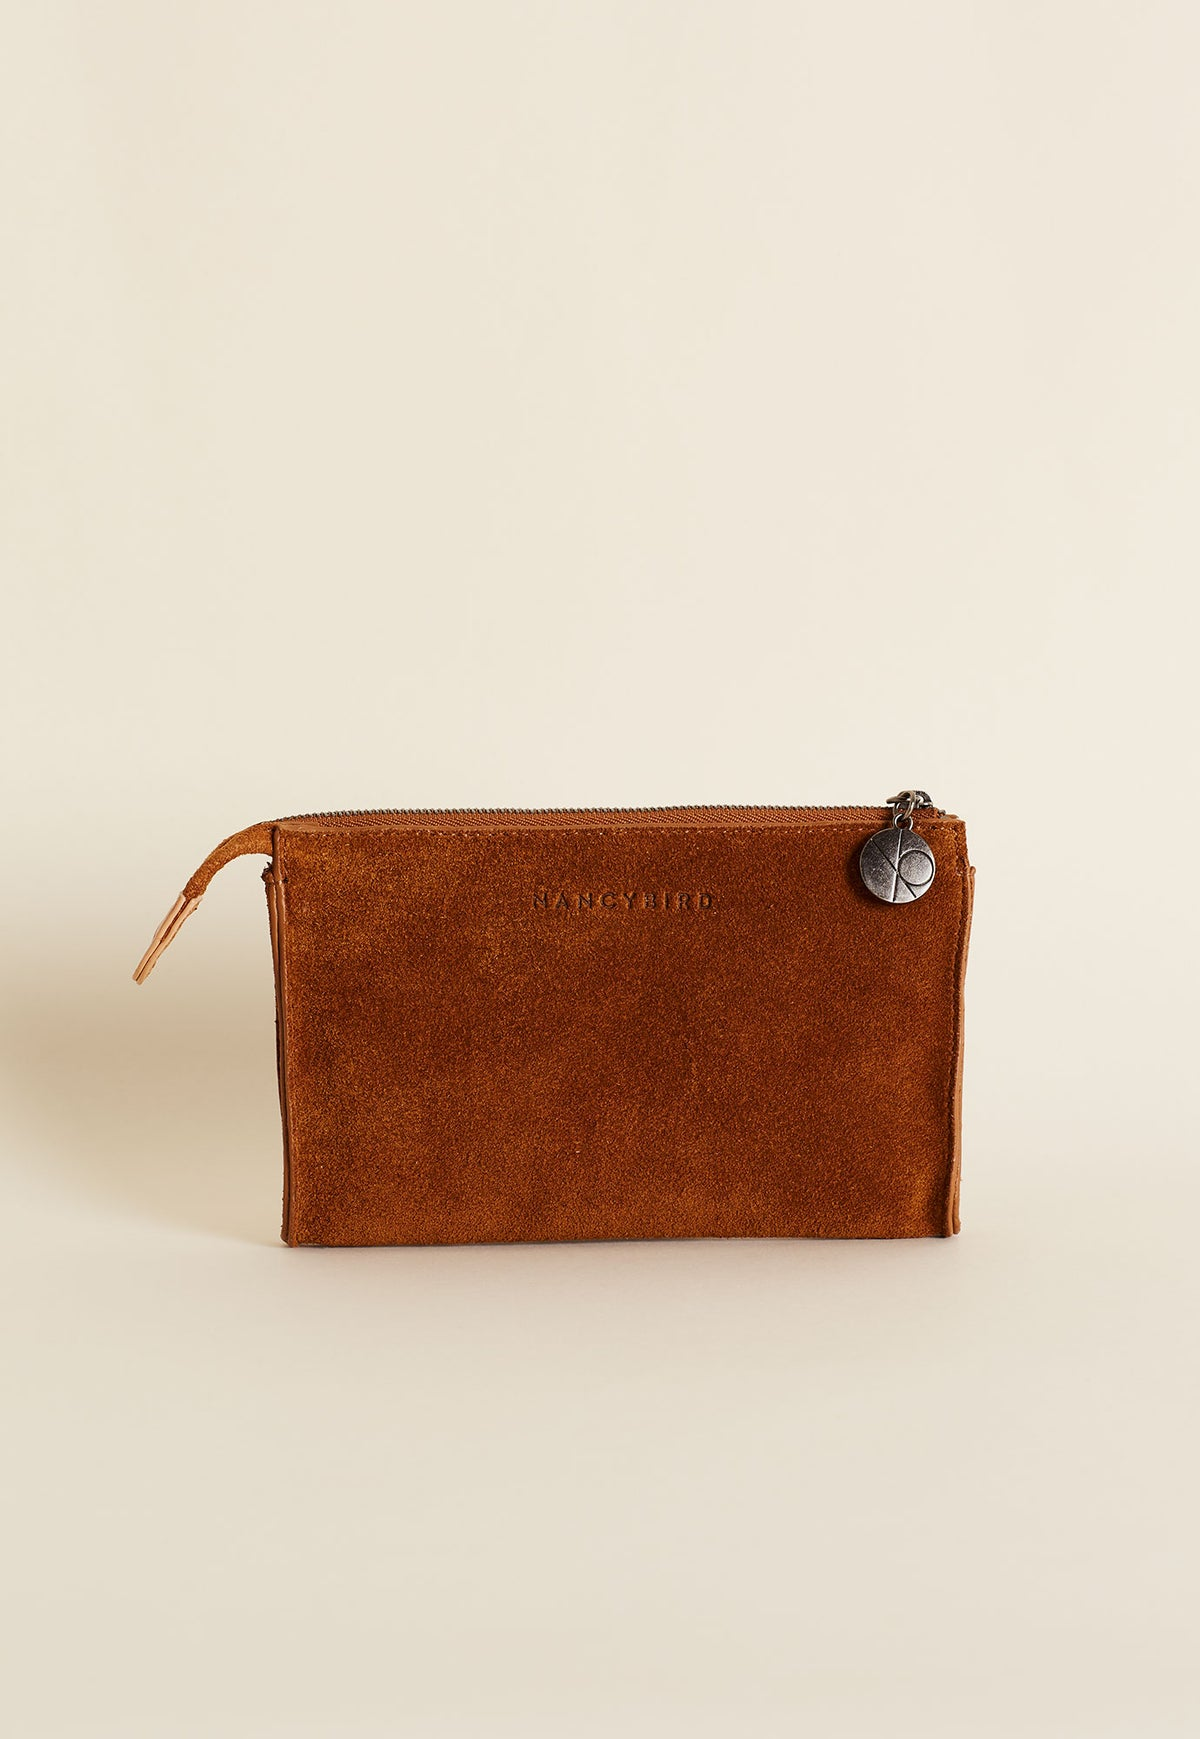 Piper Wallet - Tobacco Suede